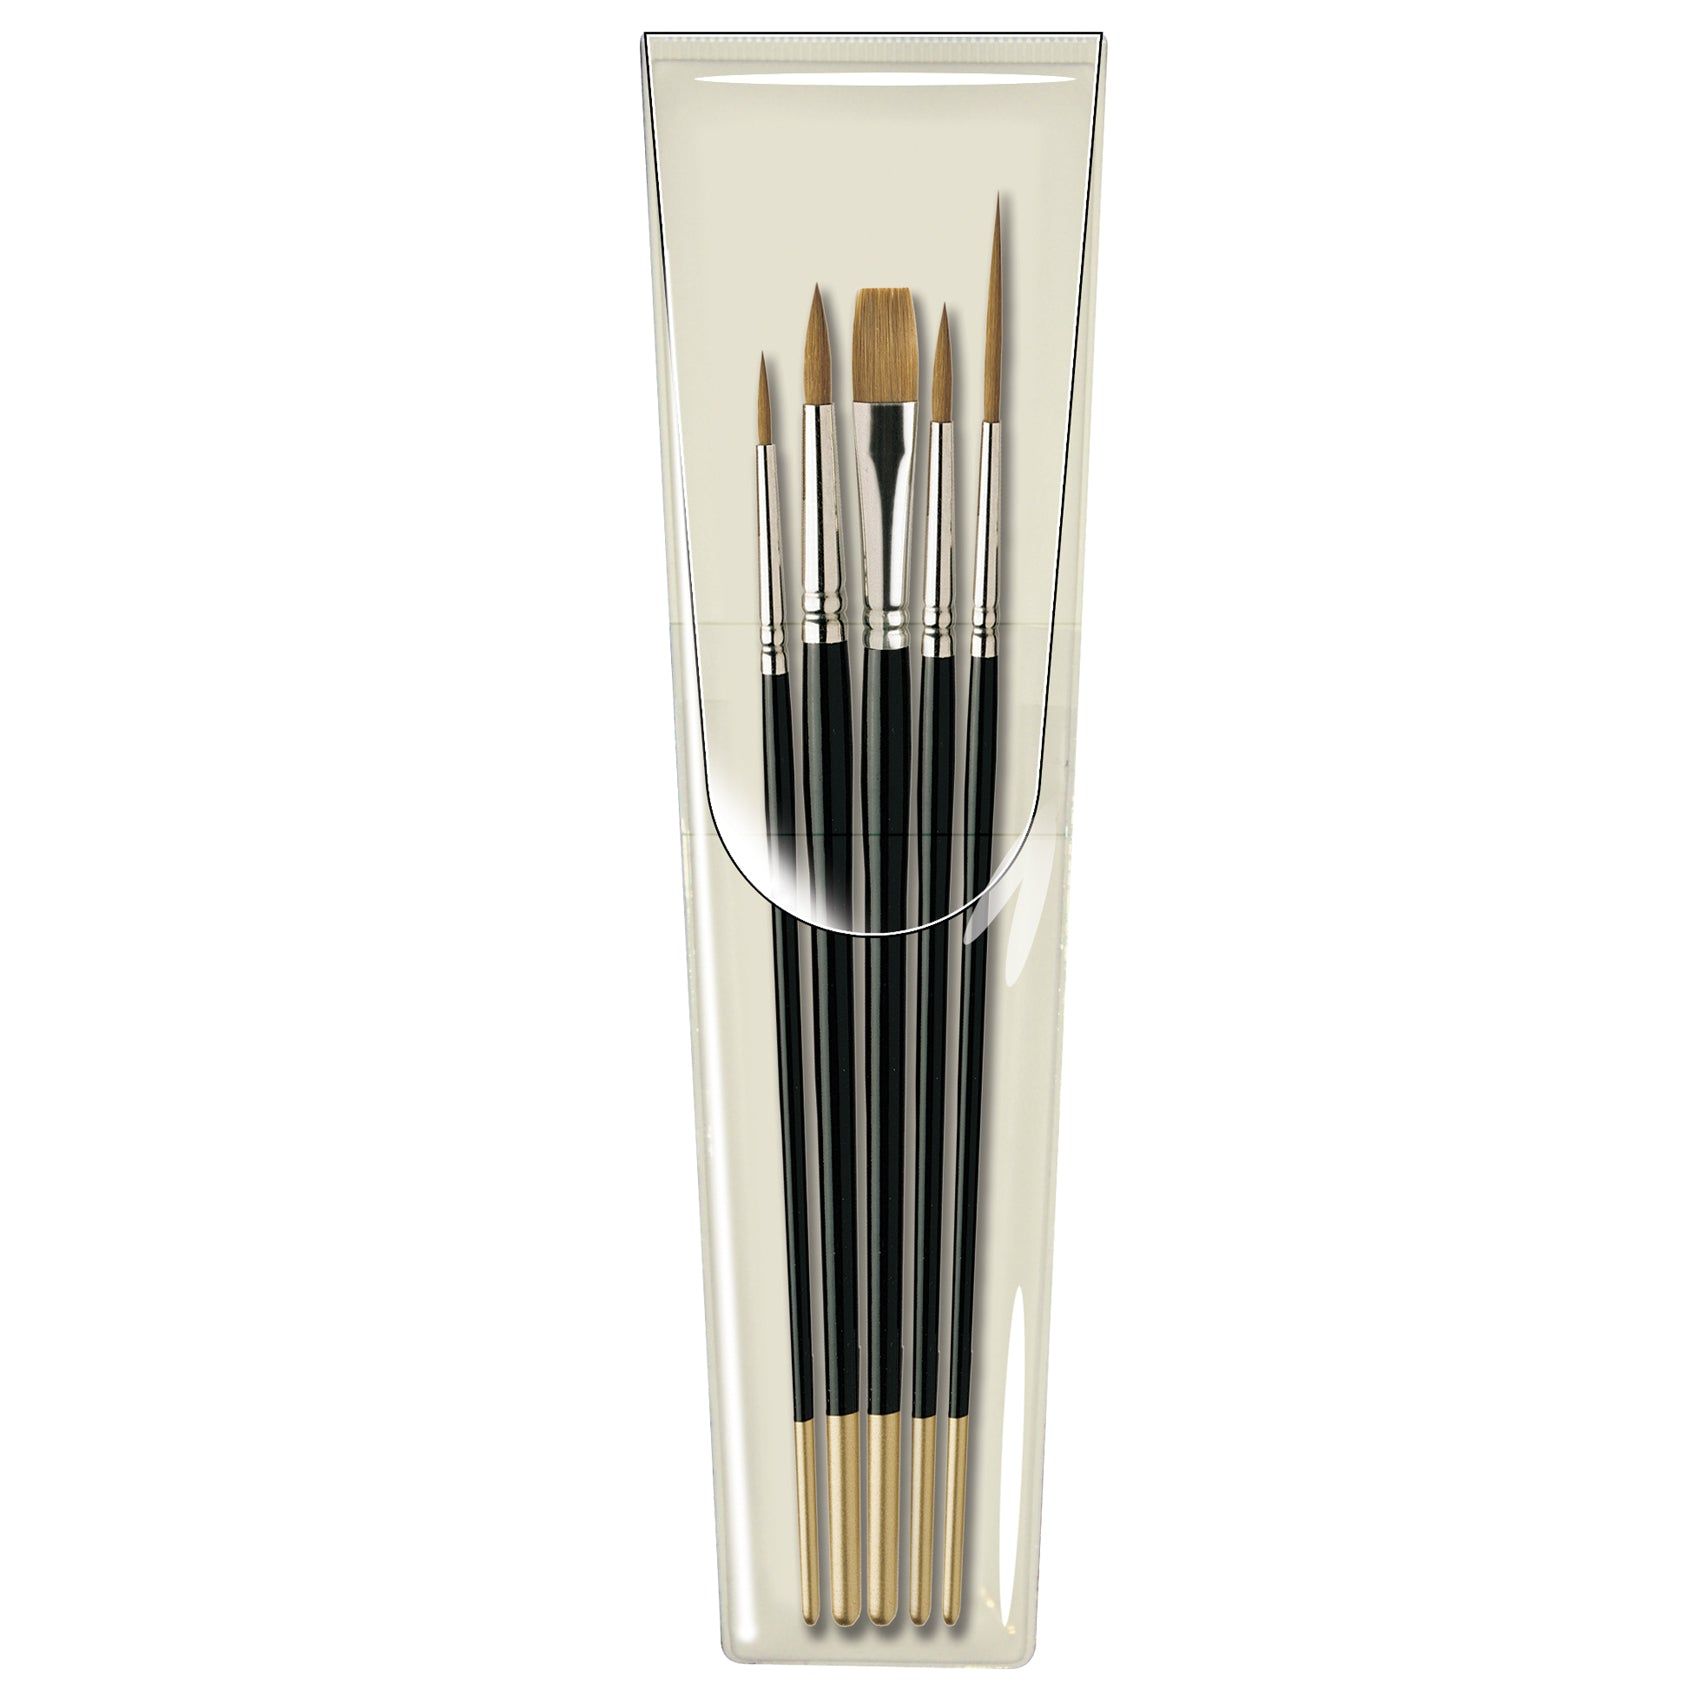 Pro Arte Prolene Brush Set - W1